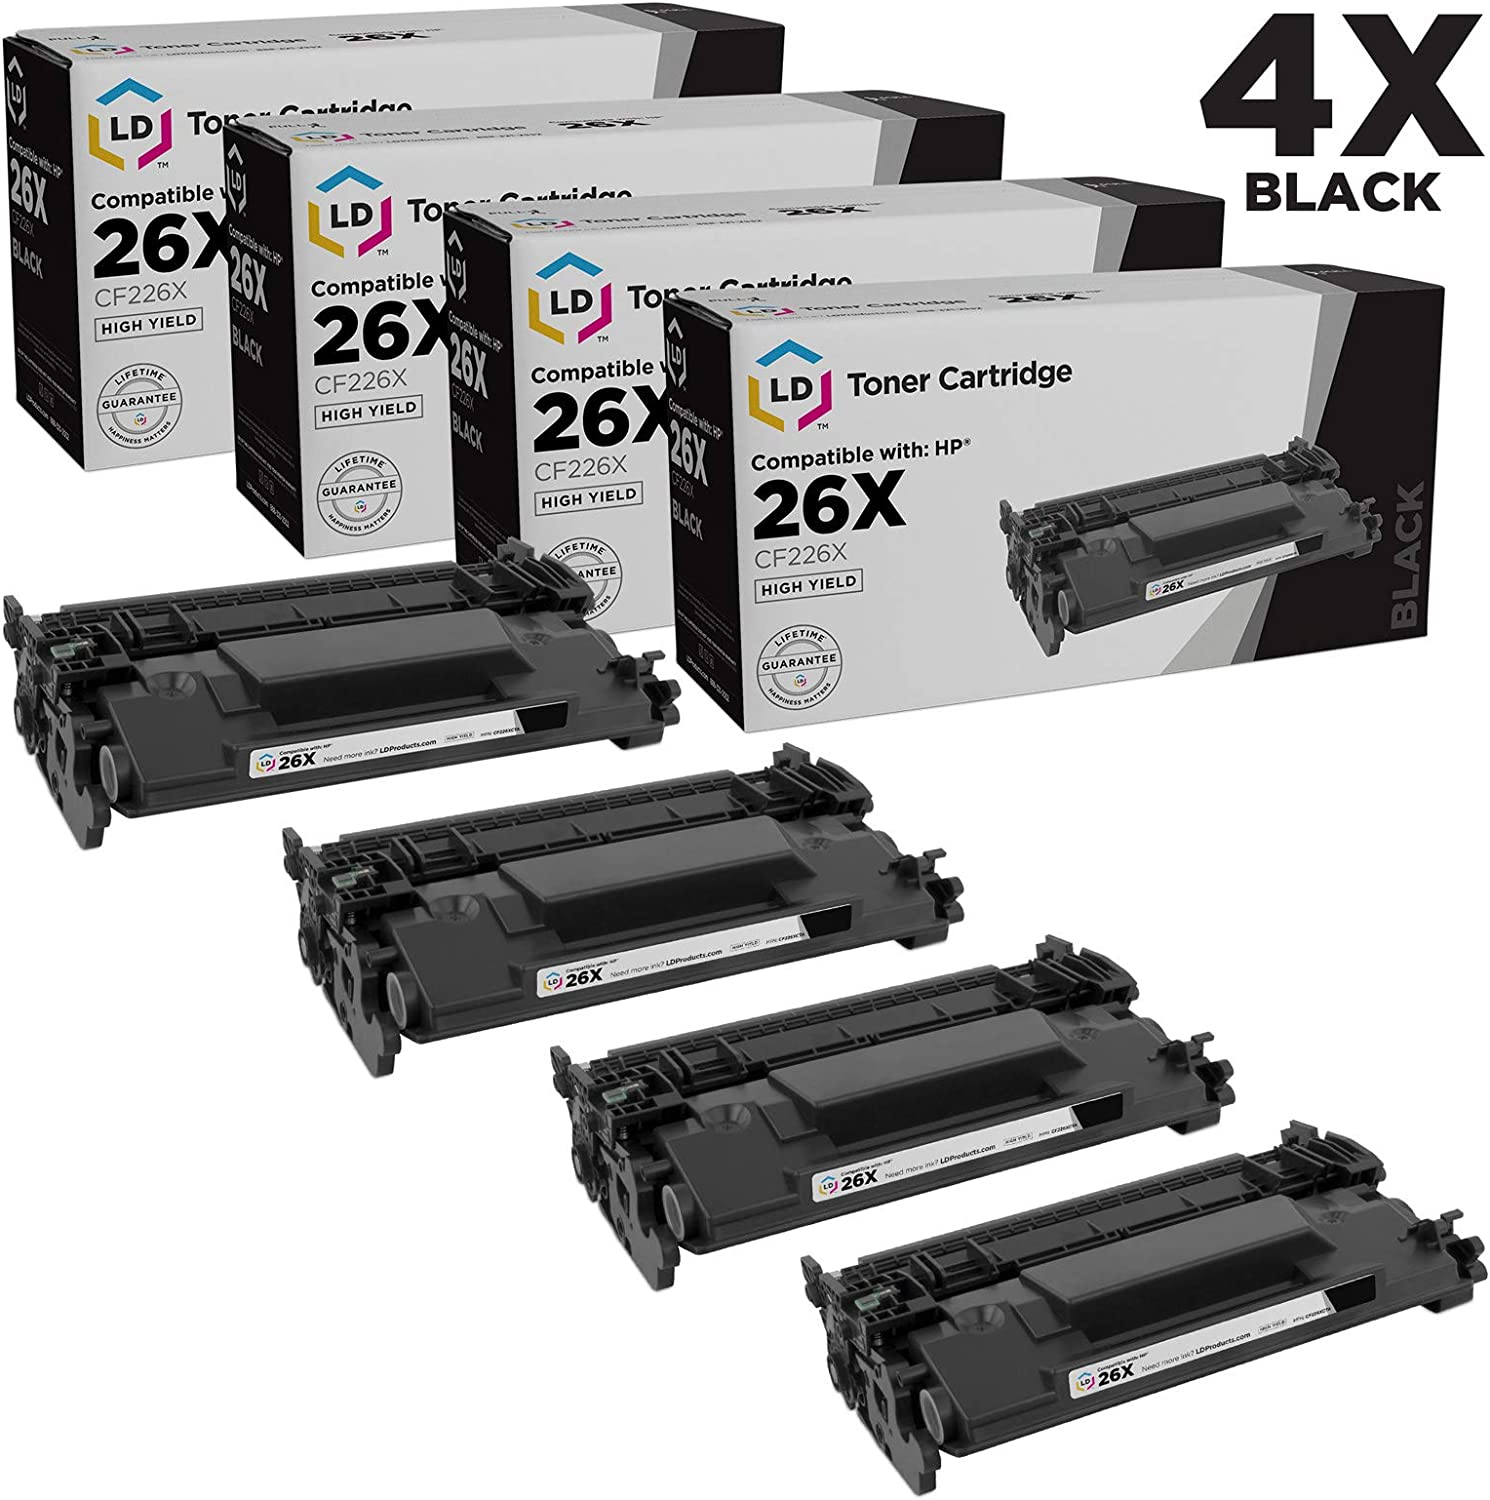 LD Compatible Toner Cartridge Replacement for HP 26X CF226X High Yield (Black, 4-Pack)